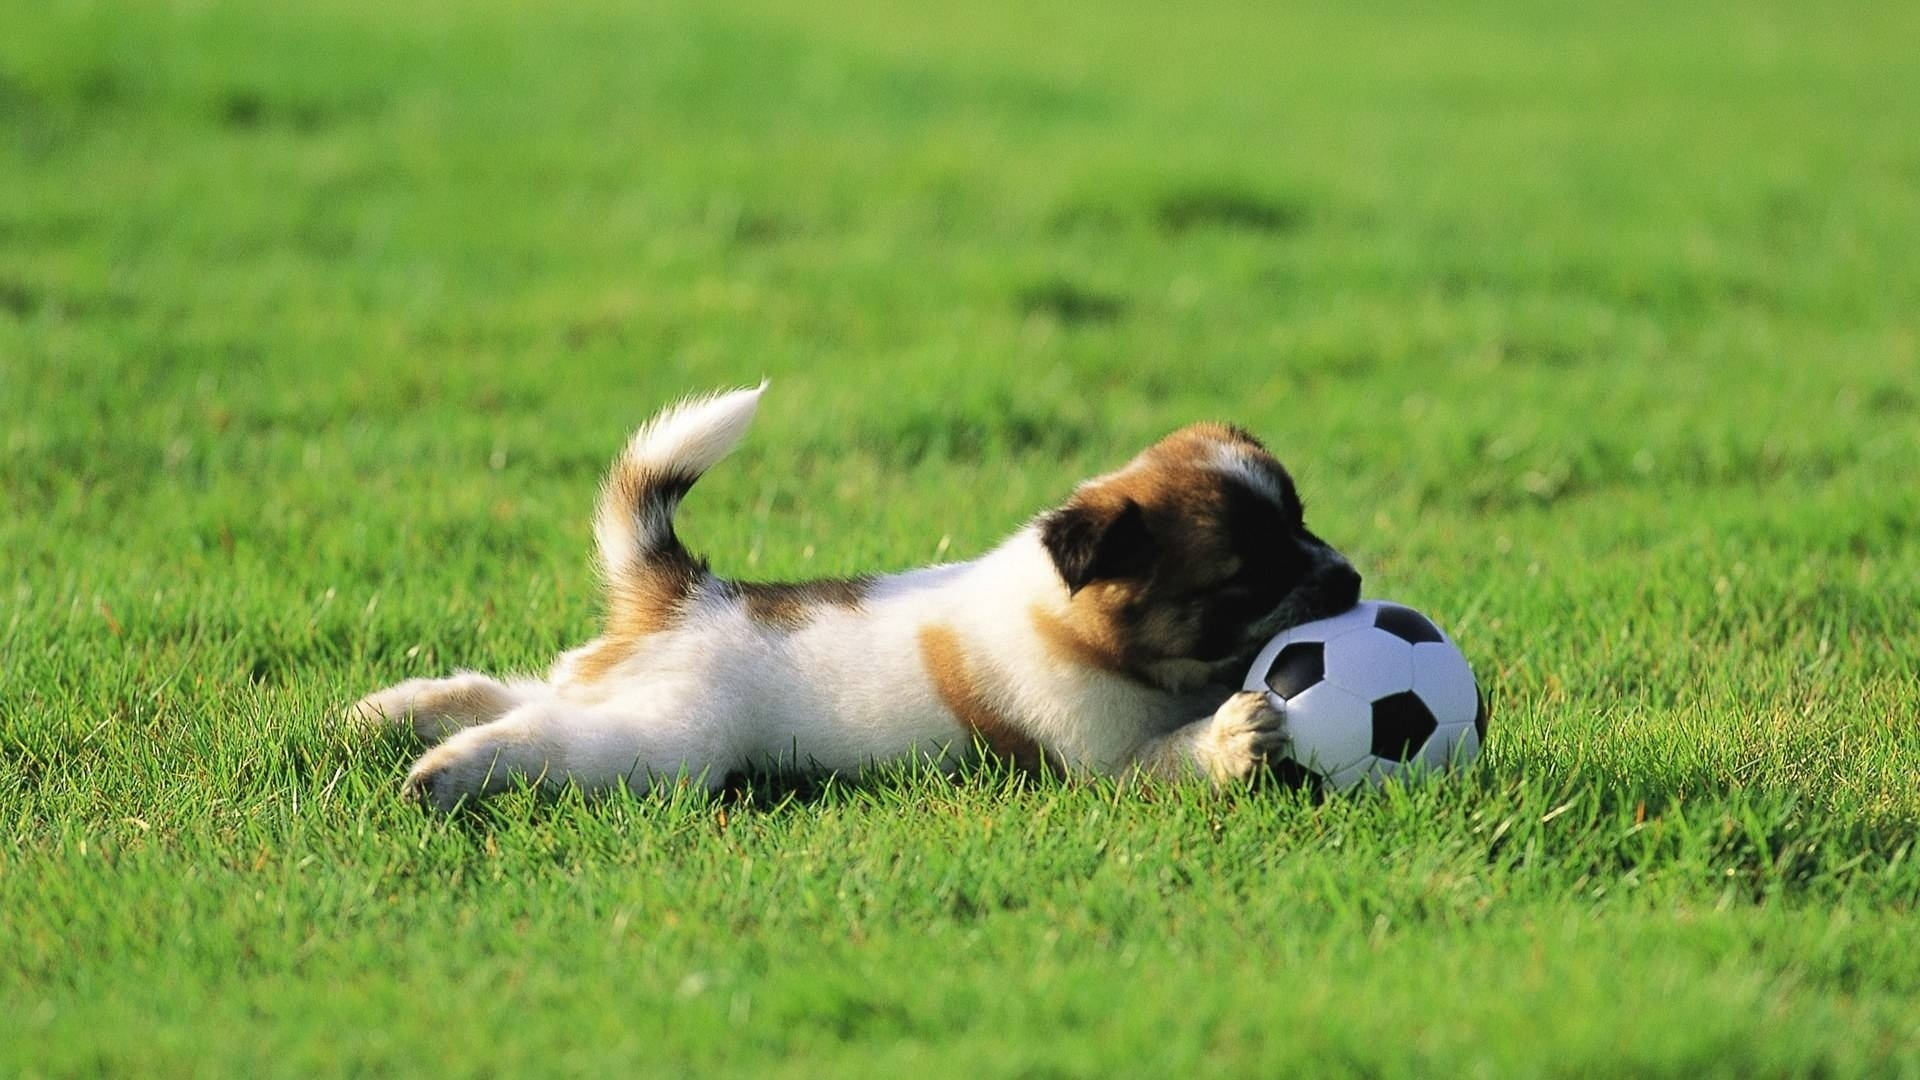 12419 download wallpaper Sports, Animals, Dogs, Grass, Football screensavers and pictures for free